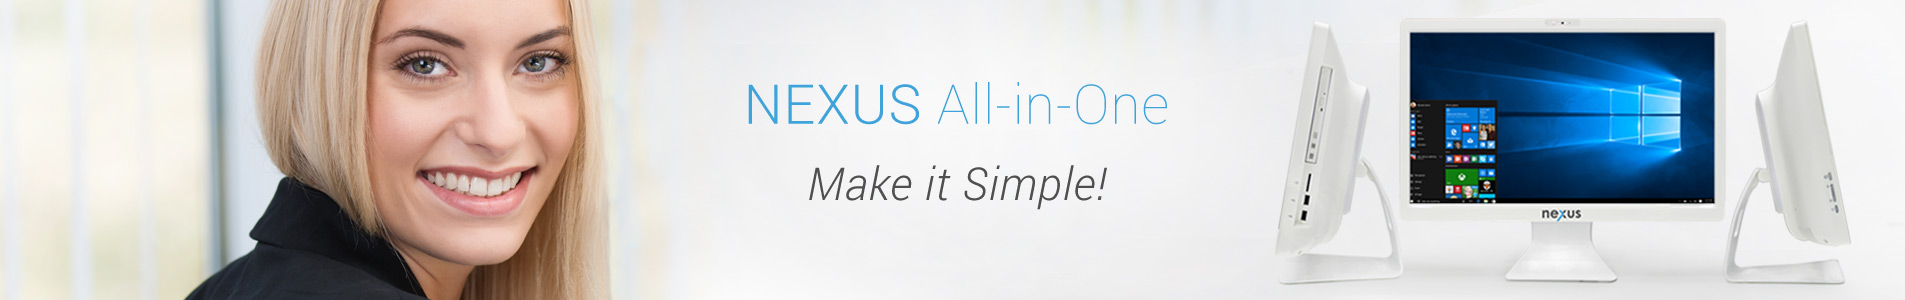 NEXUS All-in-one banner